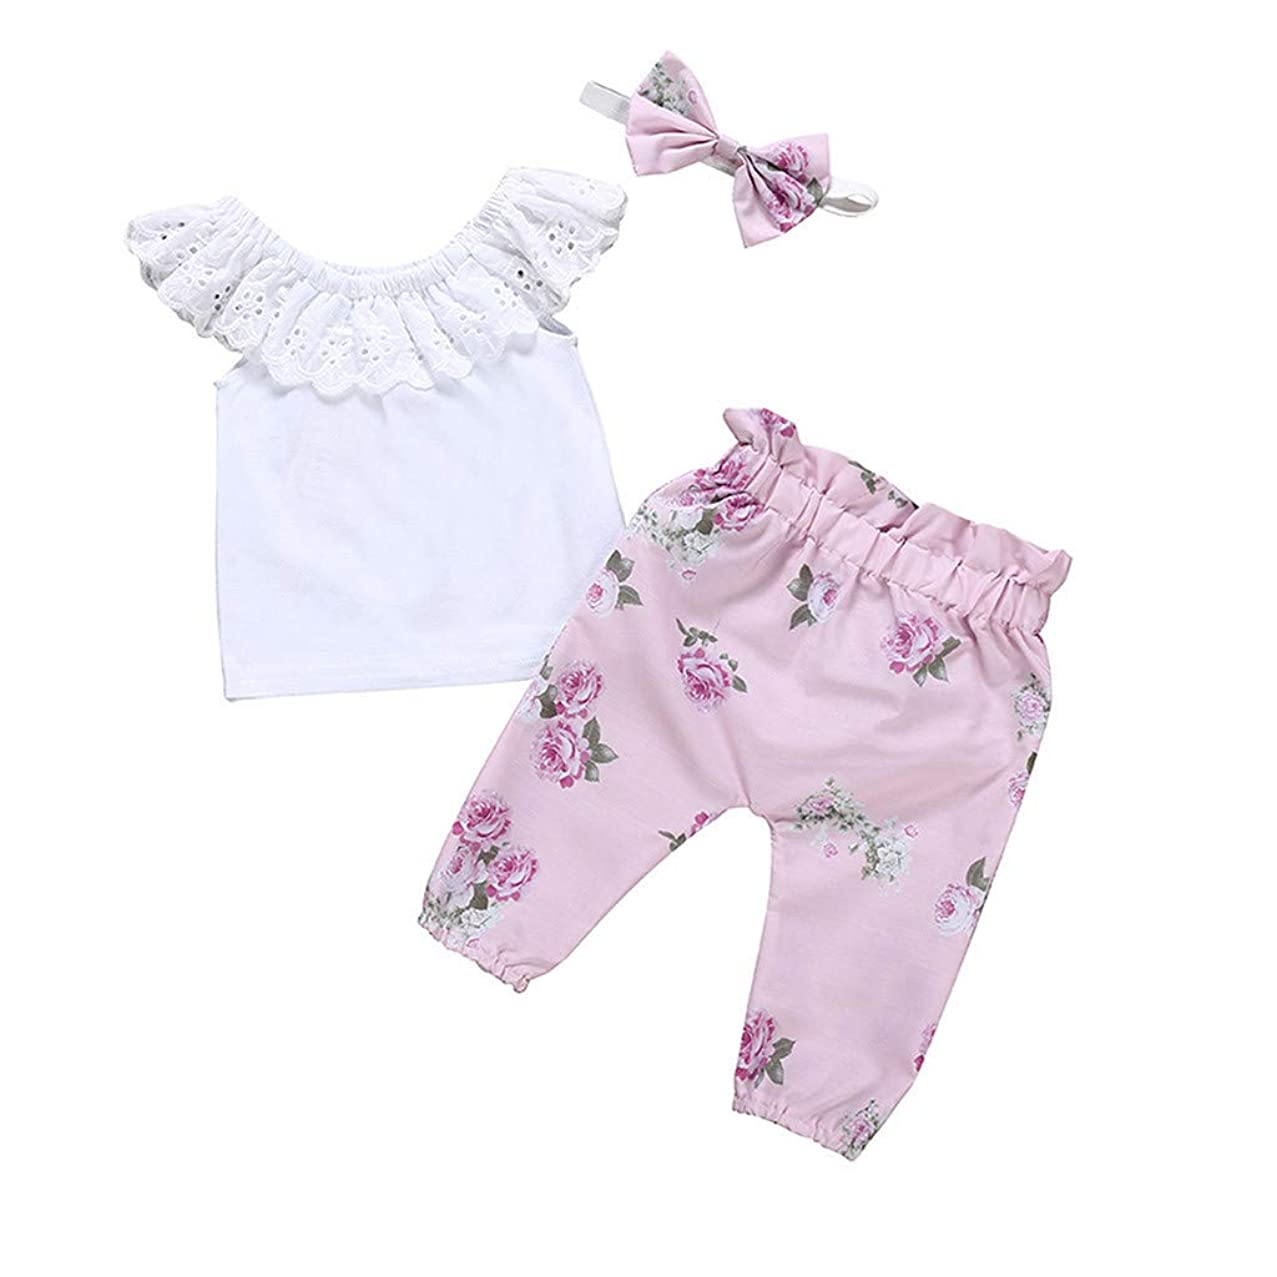 Baby Three-Piece Girls Sleeveless Solid Color Lace Collar Tops+Floral Pants Trouser+Headband,SIN vimklo